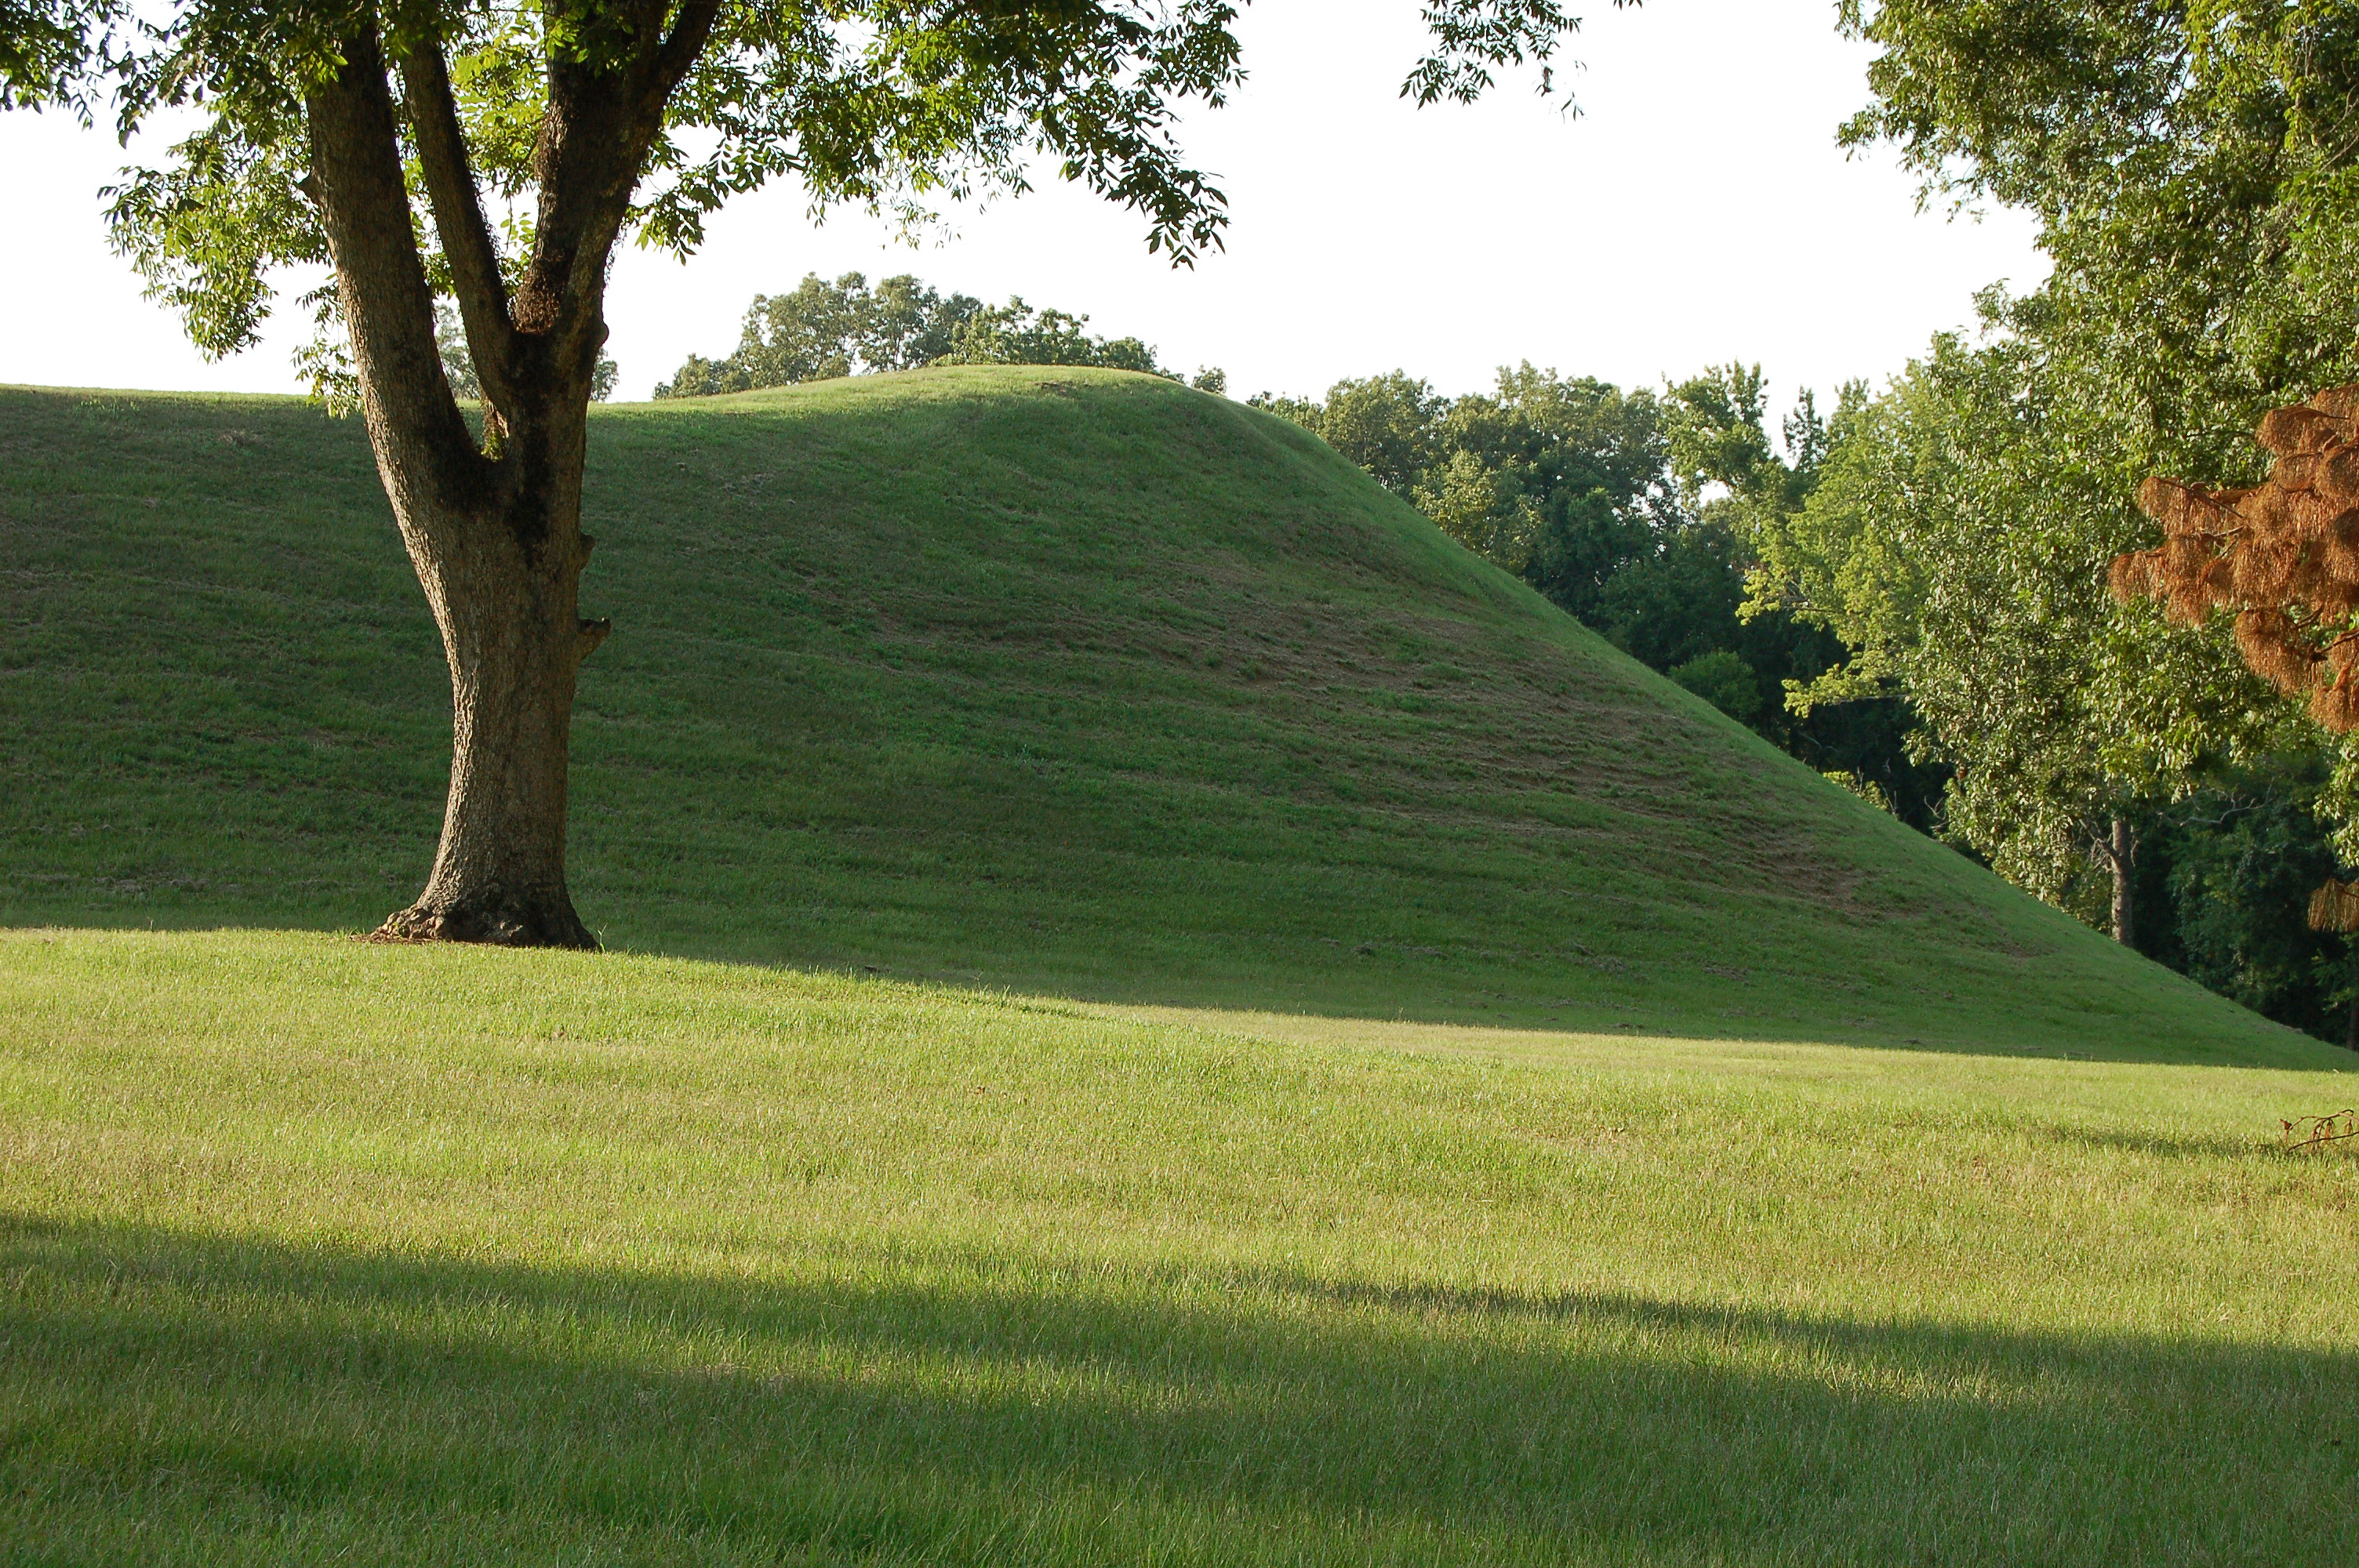 chestnut mound hindu dating site American chestnut (25) american history (6) hindu temples (1) hinduism (59) north carolina's first ladies new to the ncpedia.